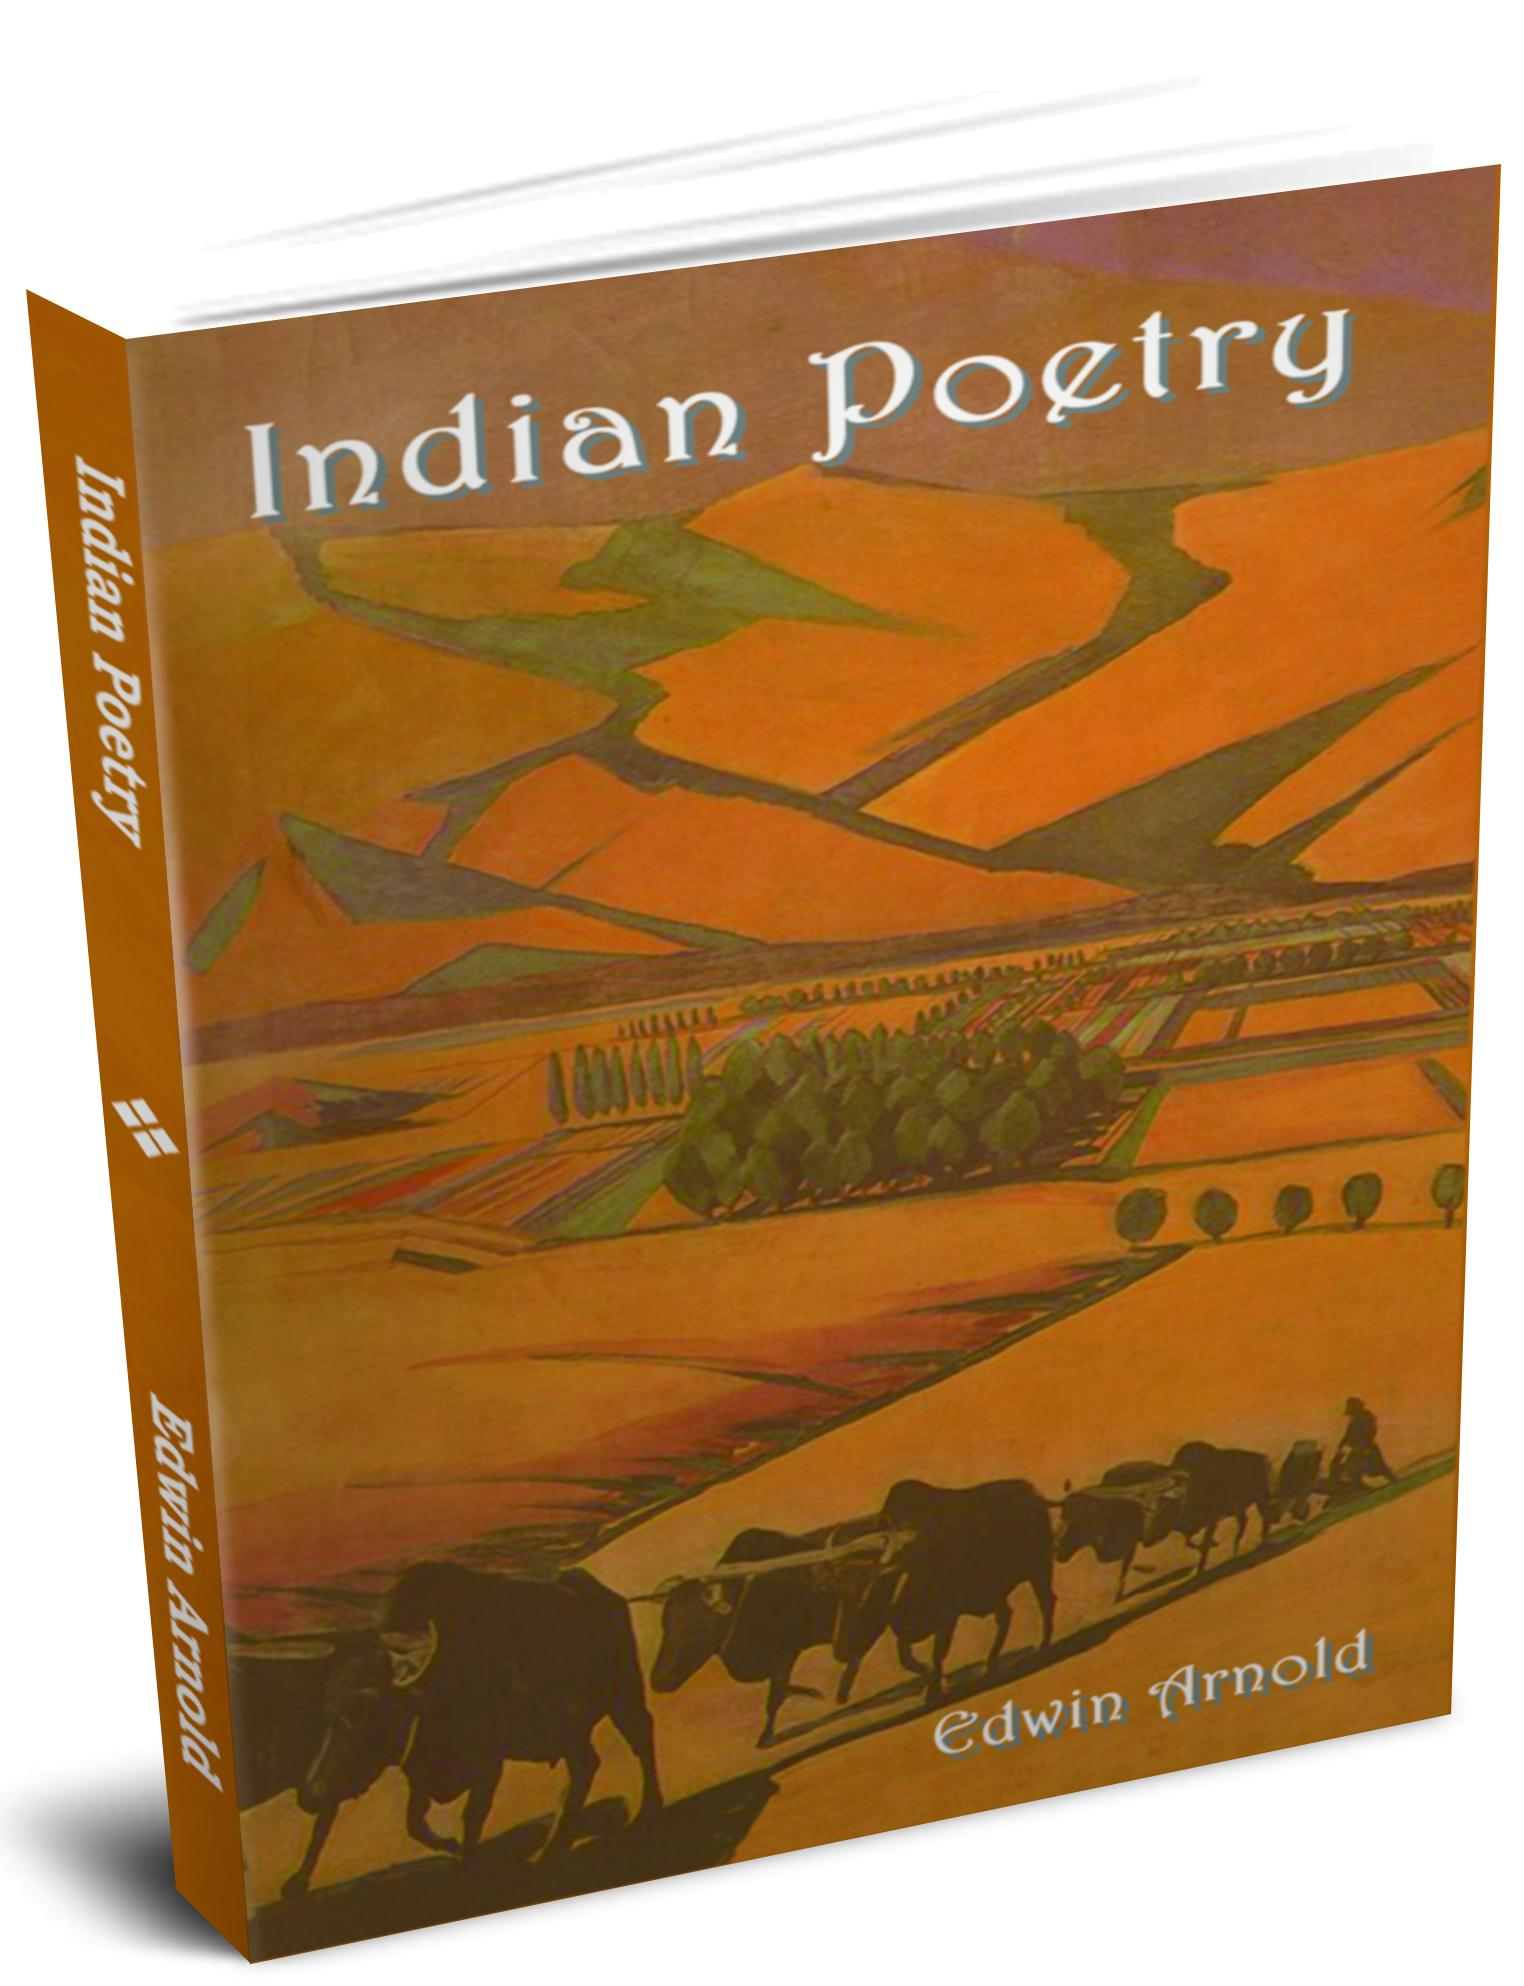 Indian Poetry Containing: